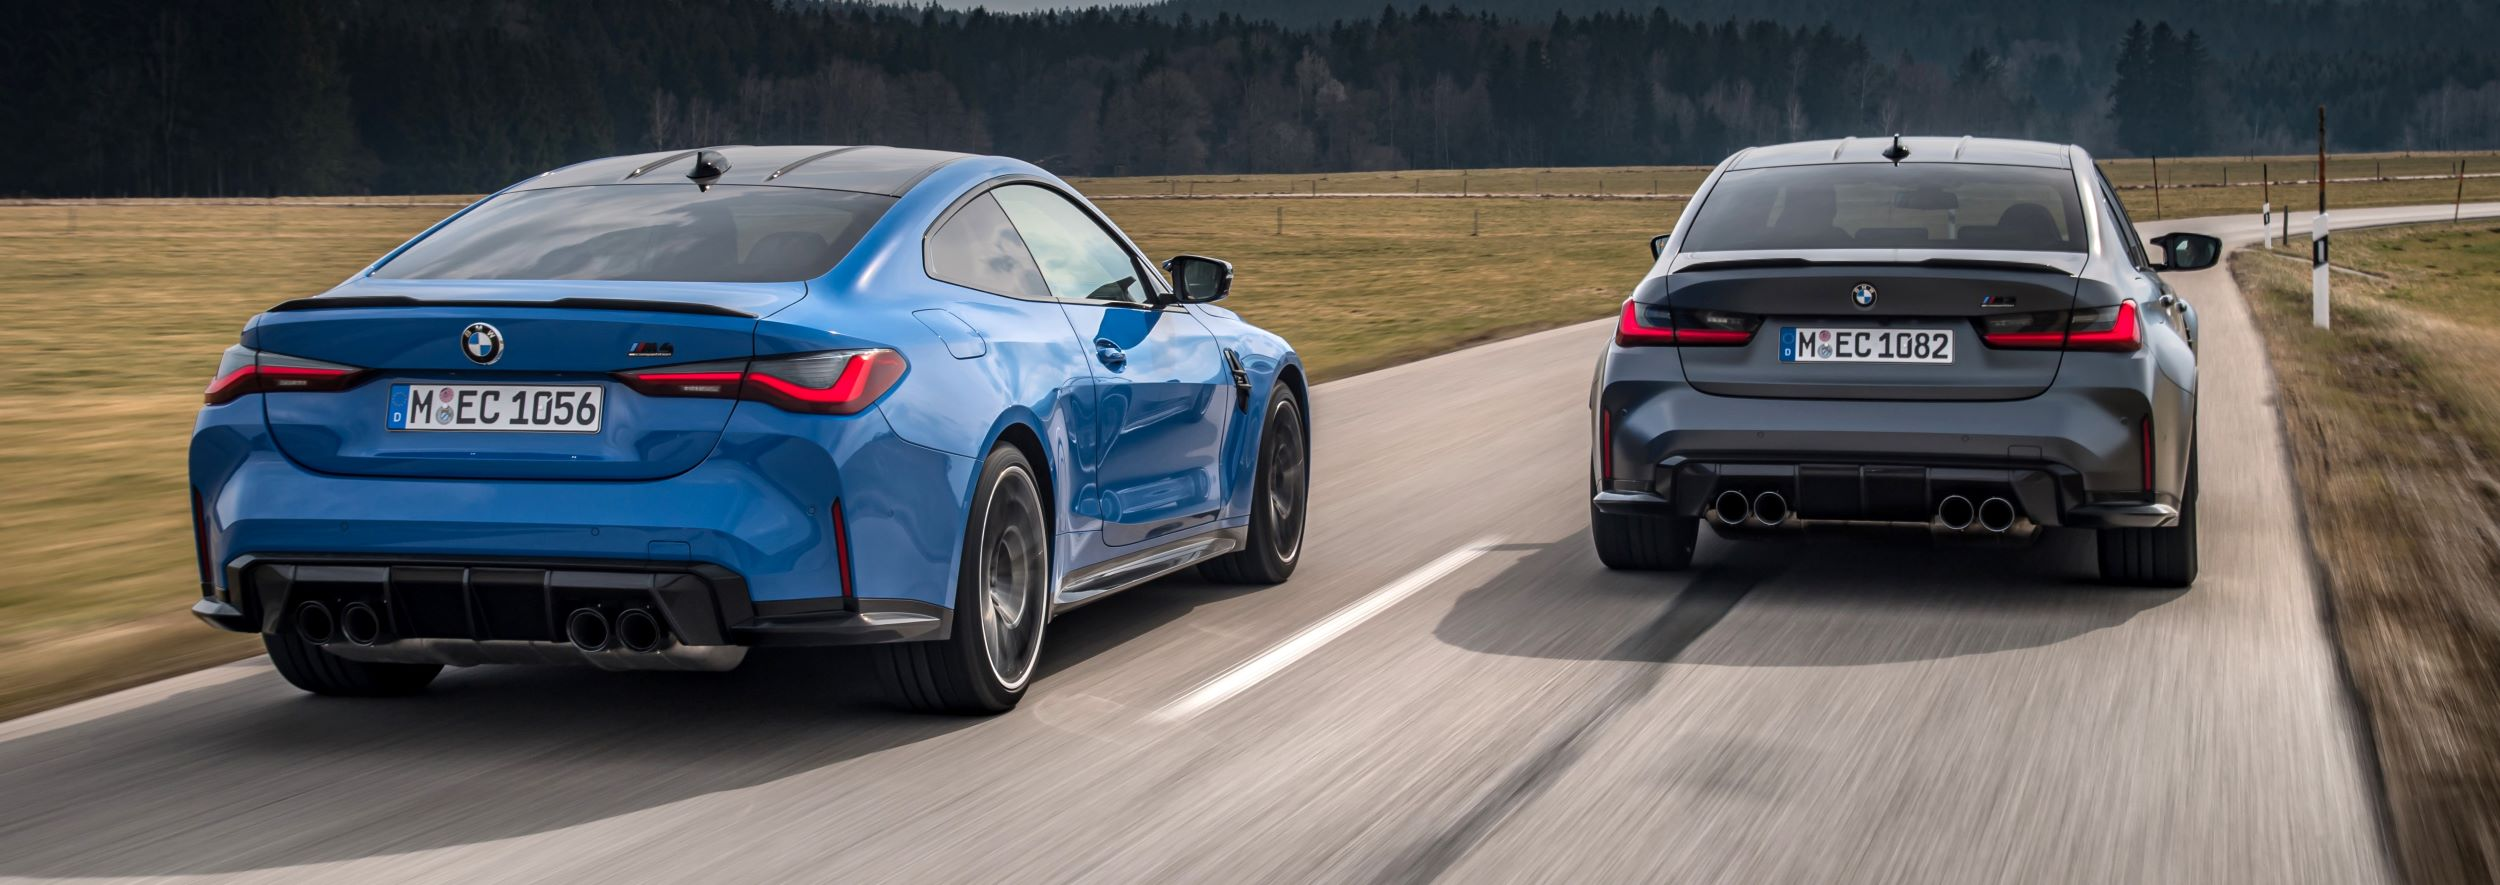 P90416615_highRes_the-all-new-bmw-m3-c